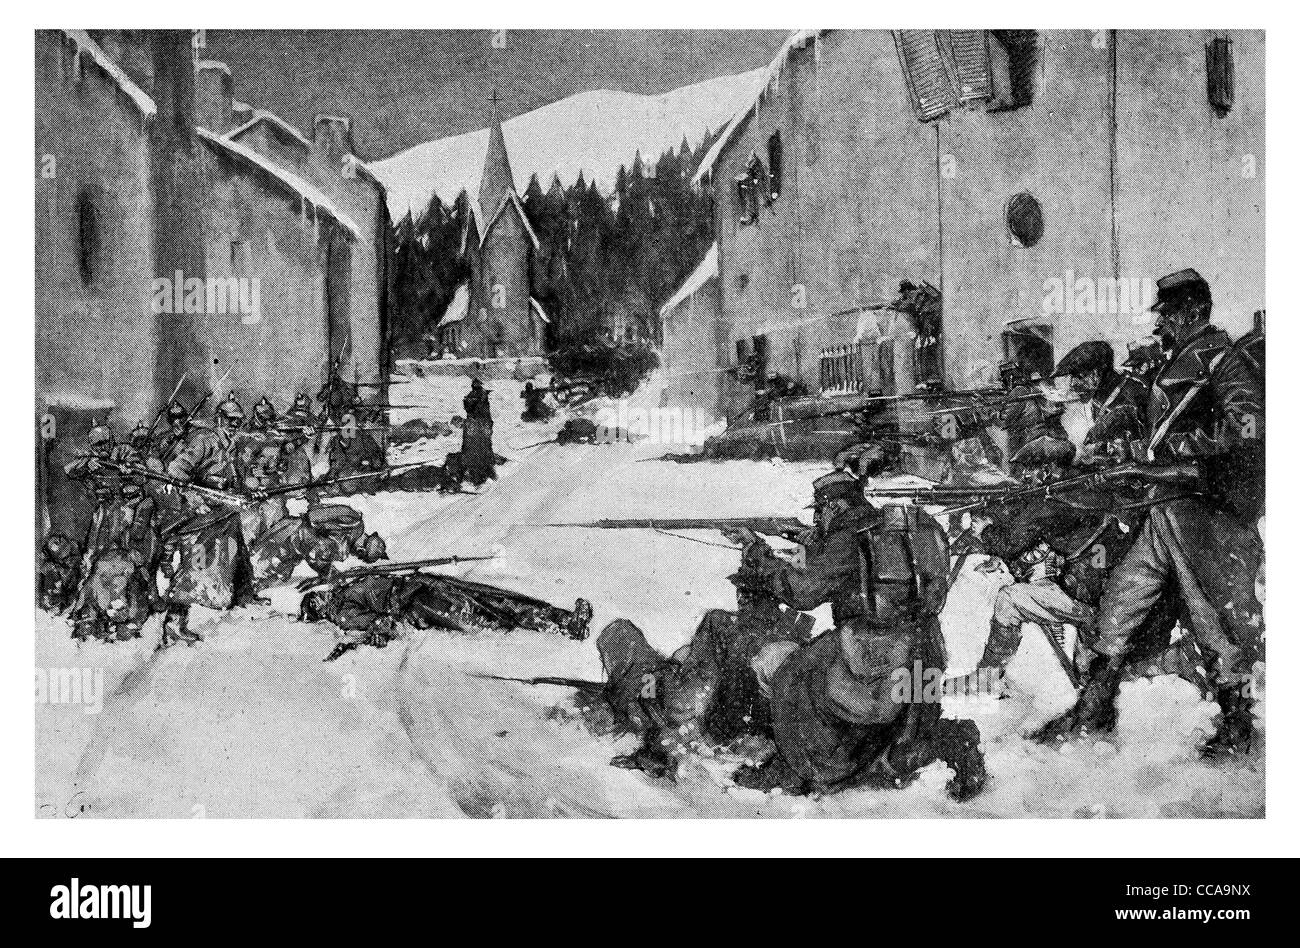 1914 Terrible house struggle Steinbach Upper Alsace French V German forces bayonet rifle snow winter street fighting - Stock Image